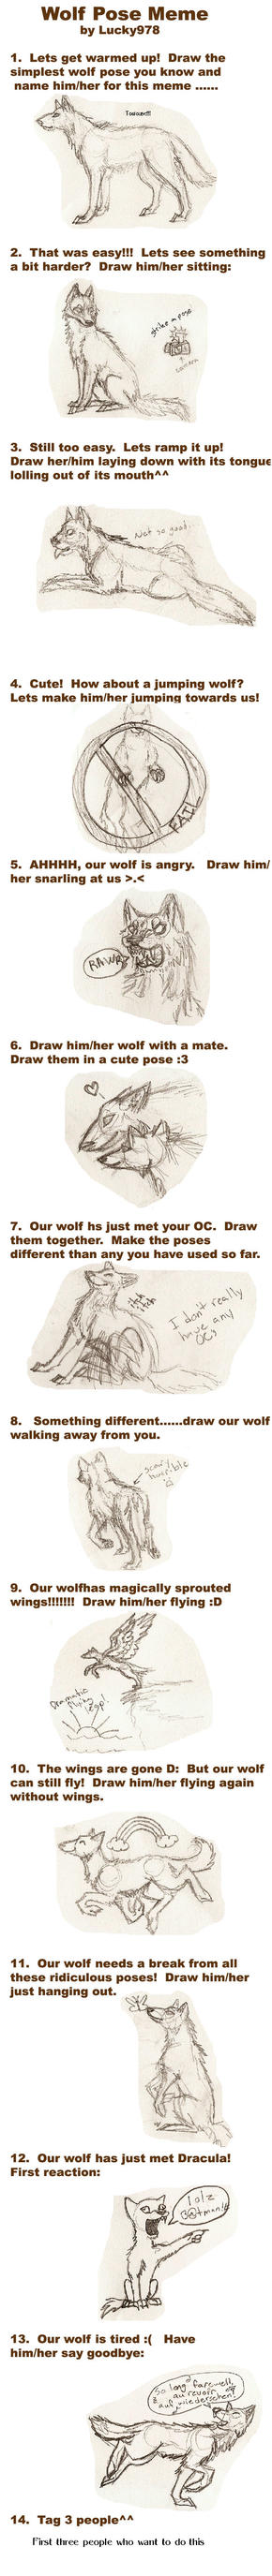 Wolf pose meme by thatwillowkid